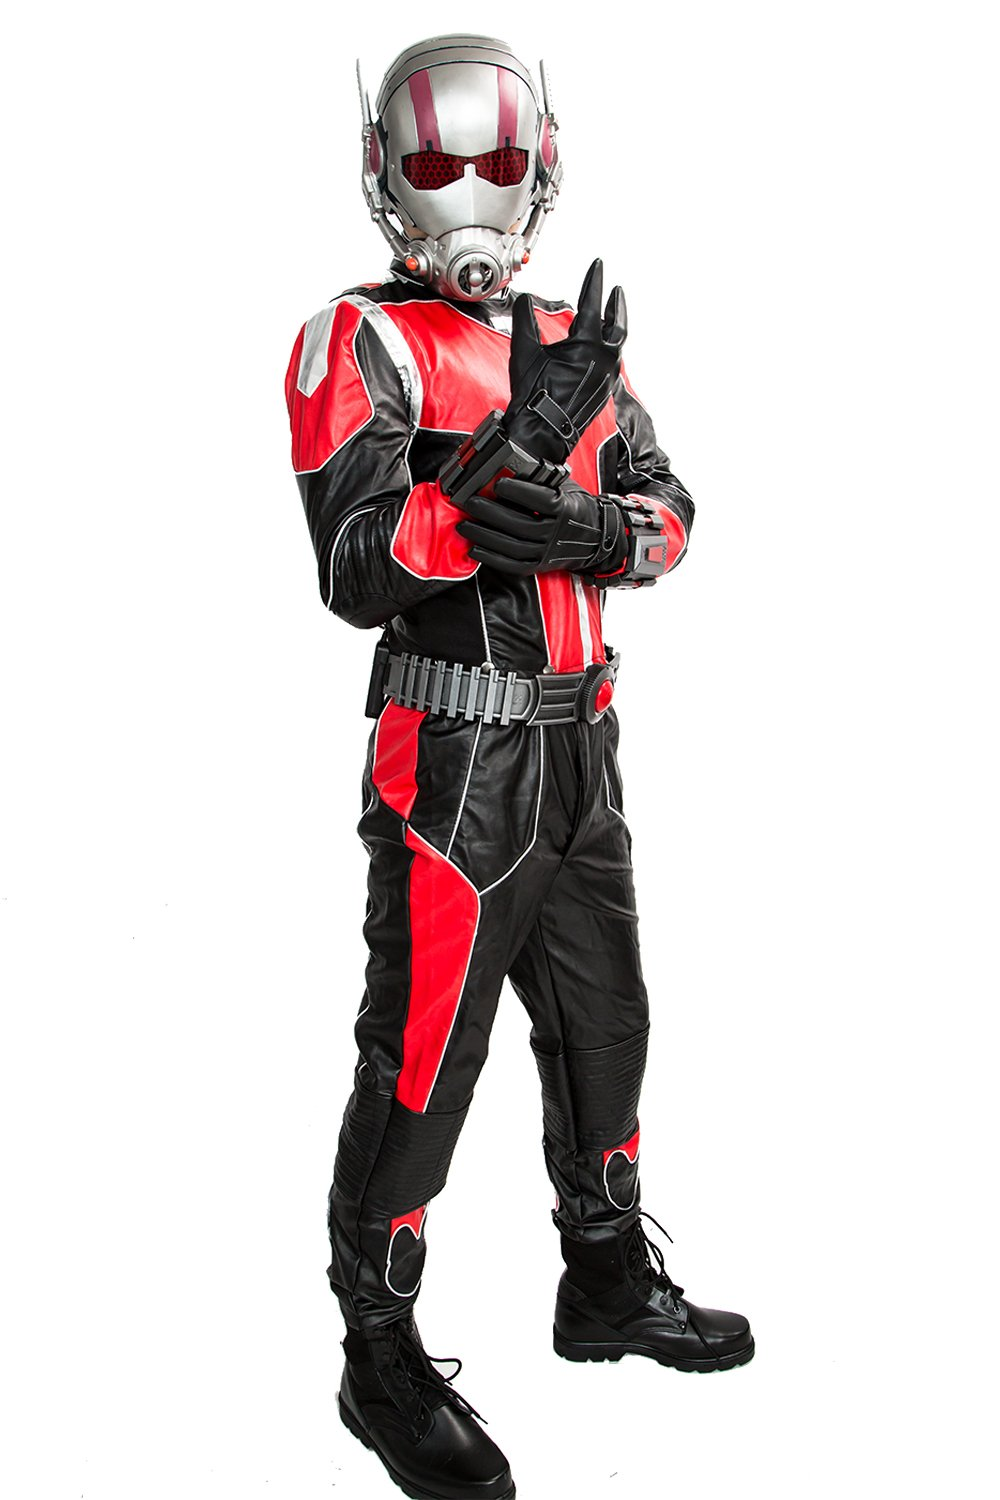 Deluxe Men's Ant Outfit PU Leather Jacket Suit for Halloween Costume XXL by xcoser